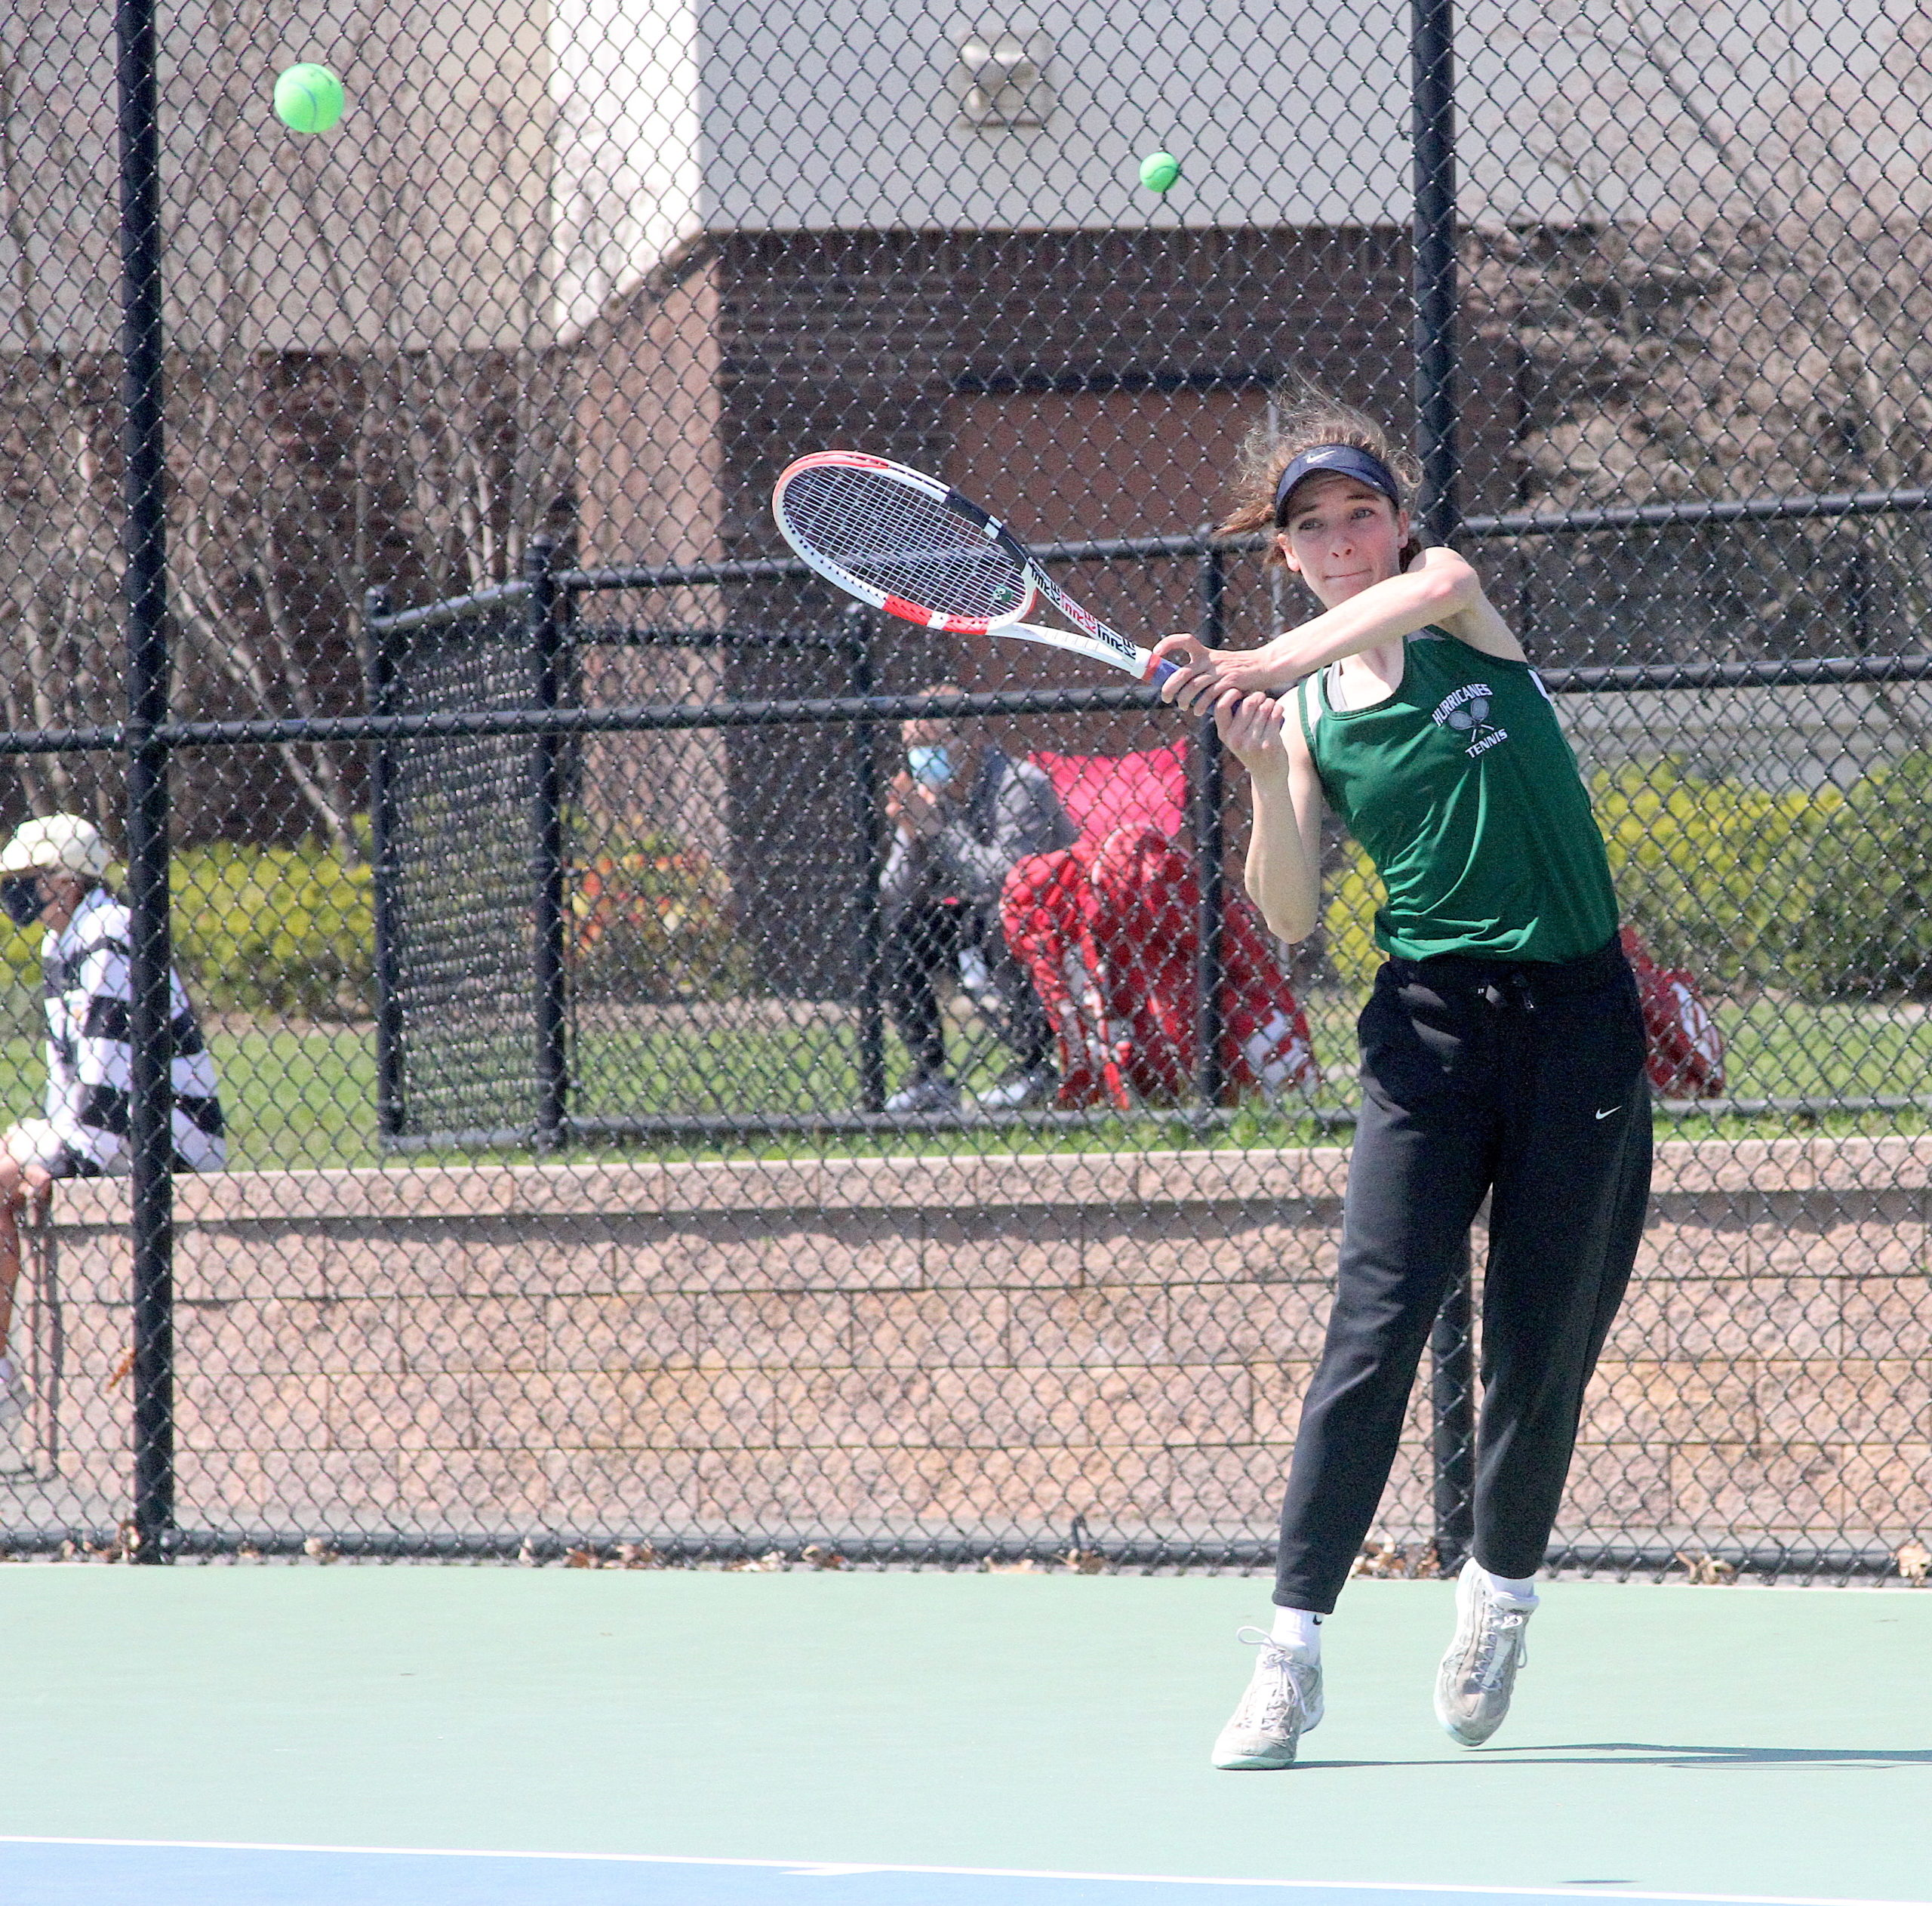 Westhampton Beach rising senior Rose Hayes keeps a volley going.